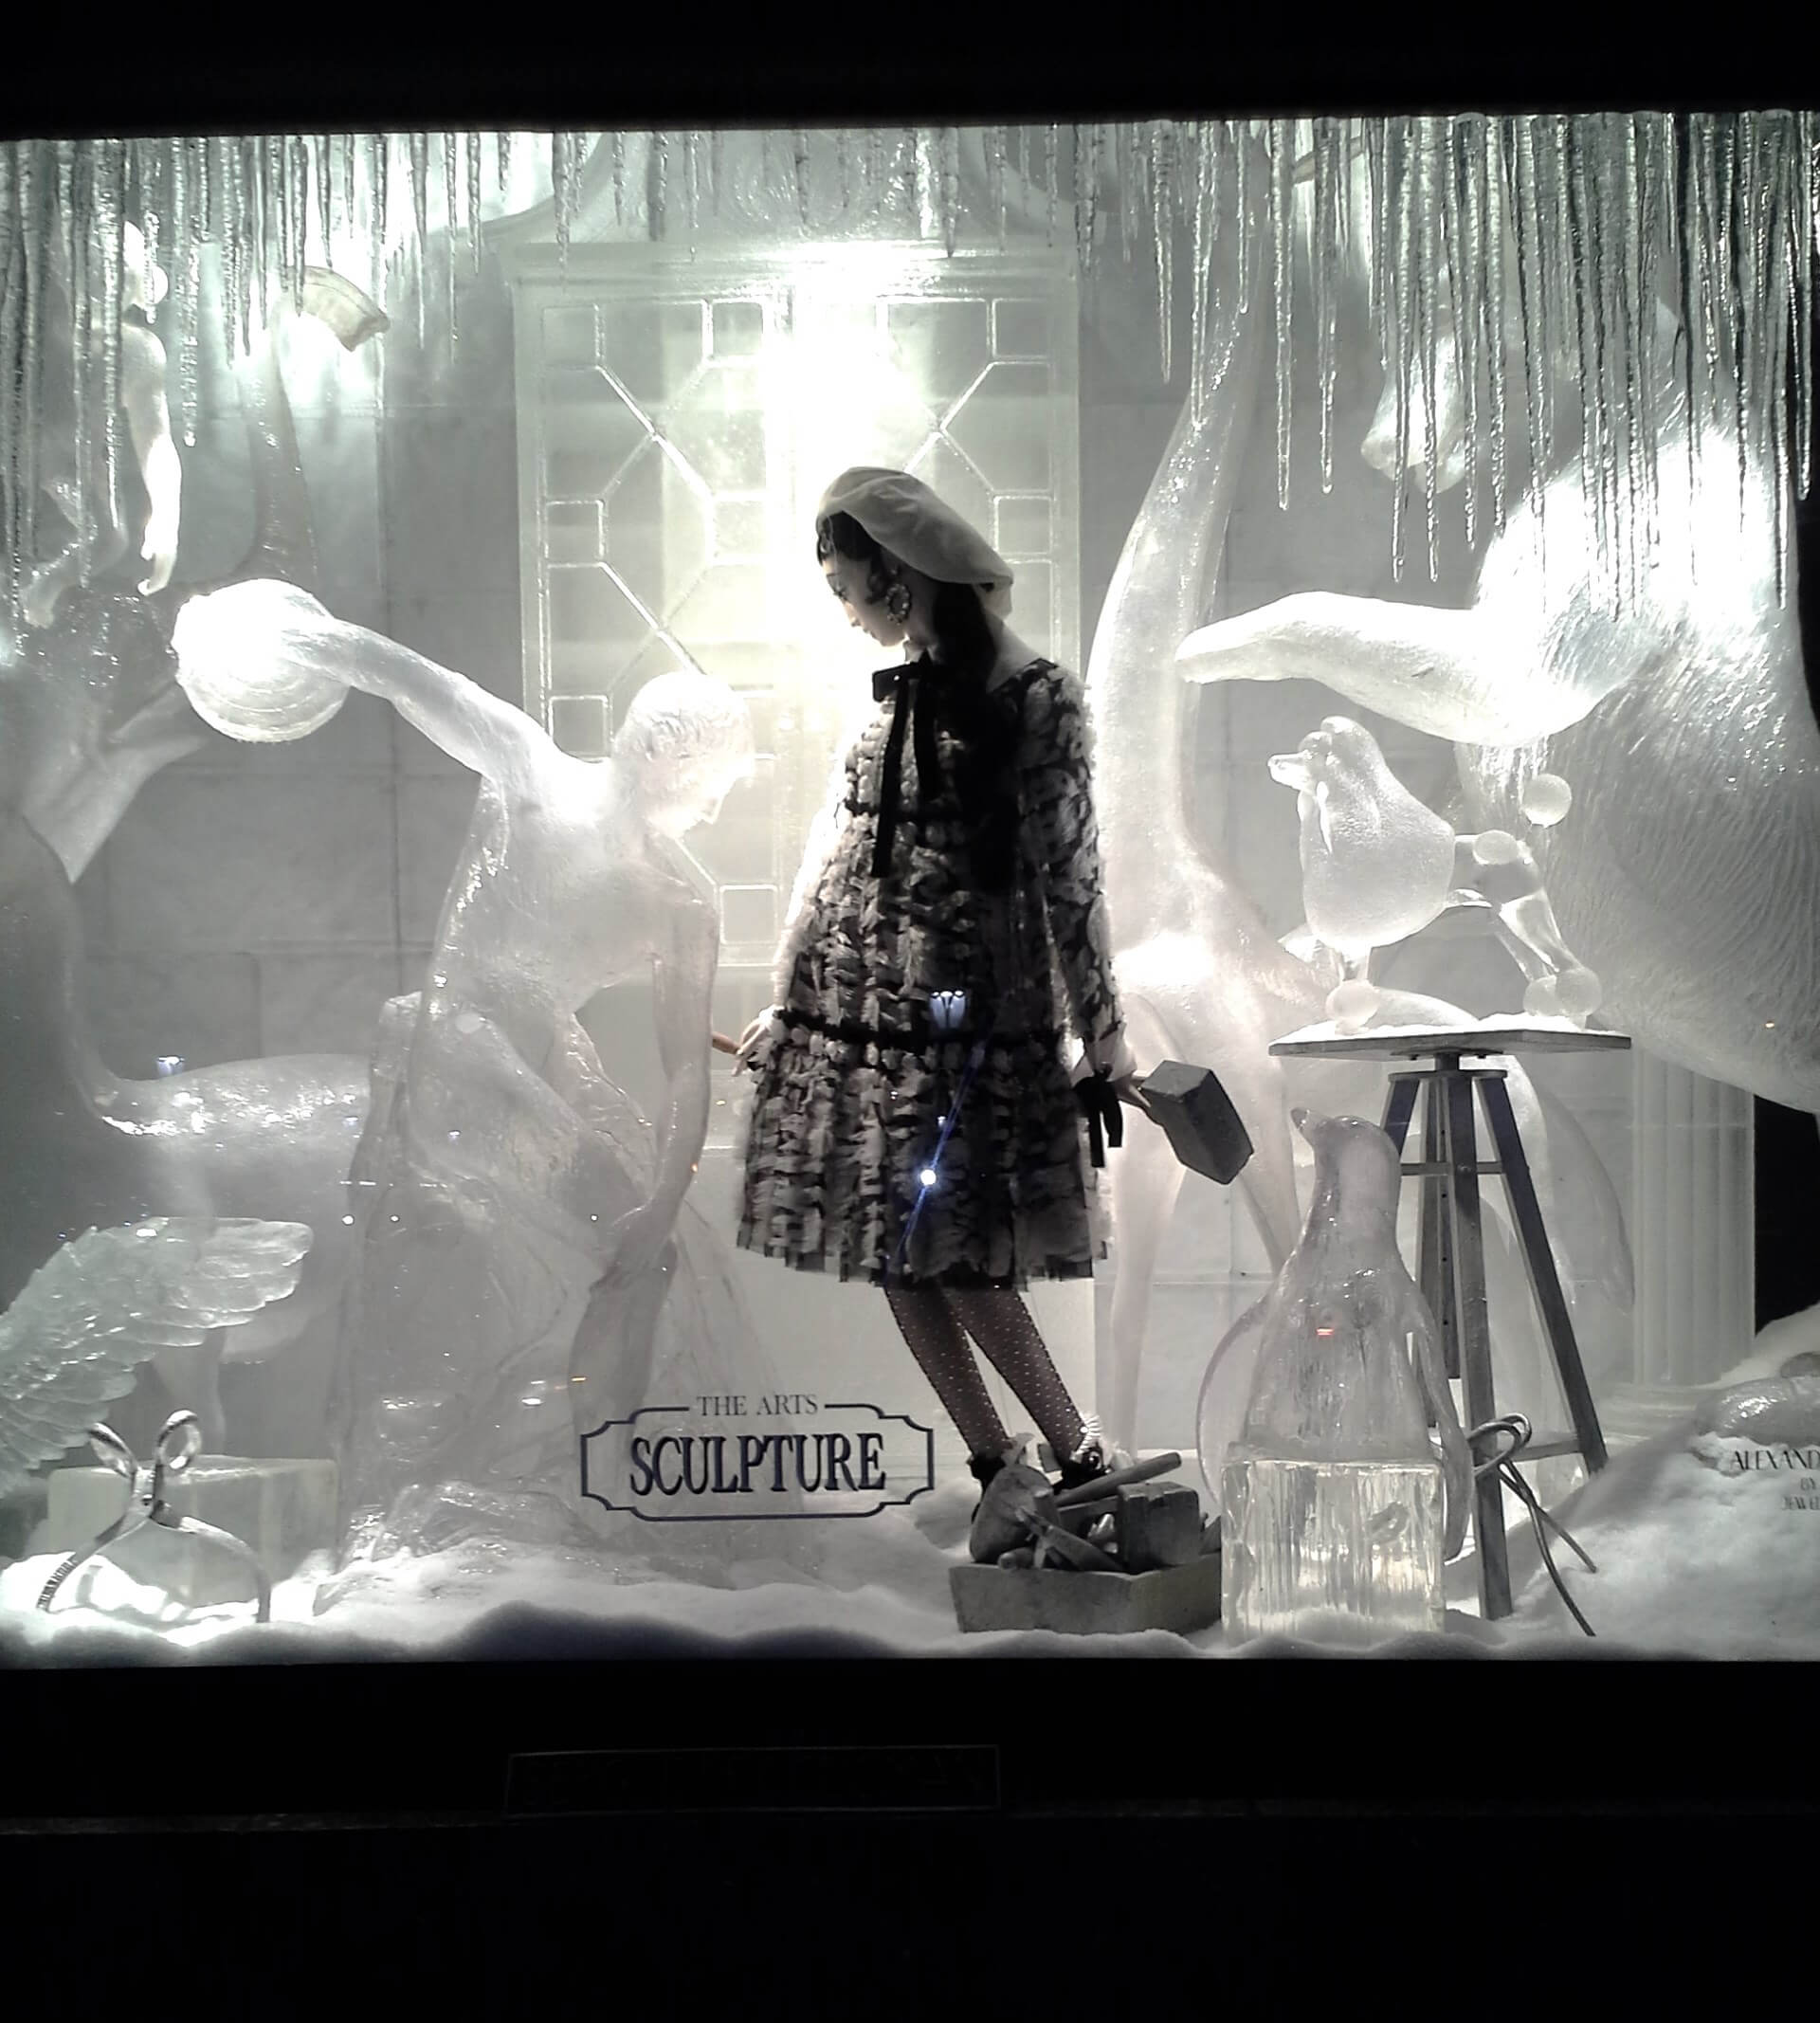 The pursuit of sculpture holiday window